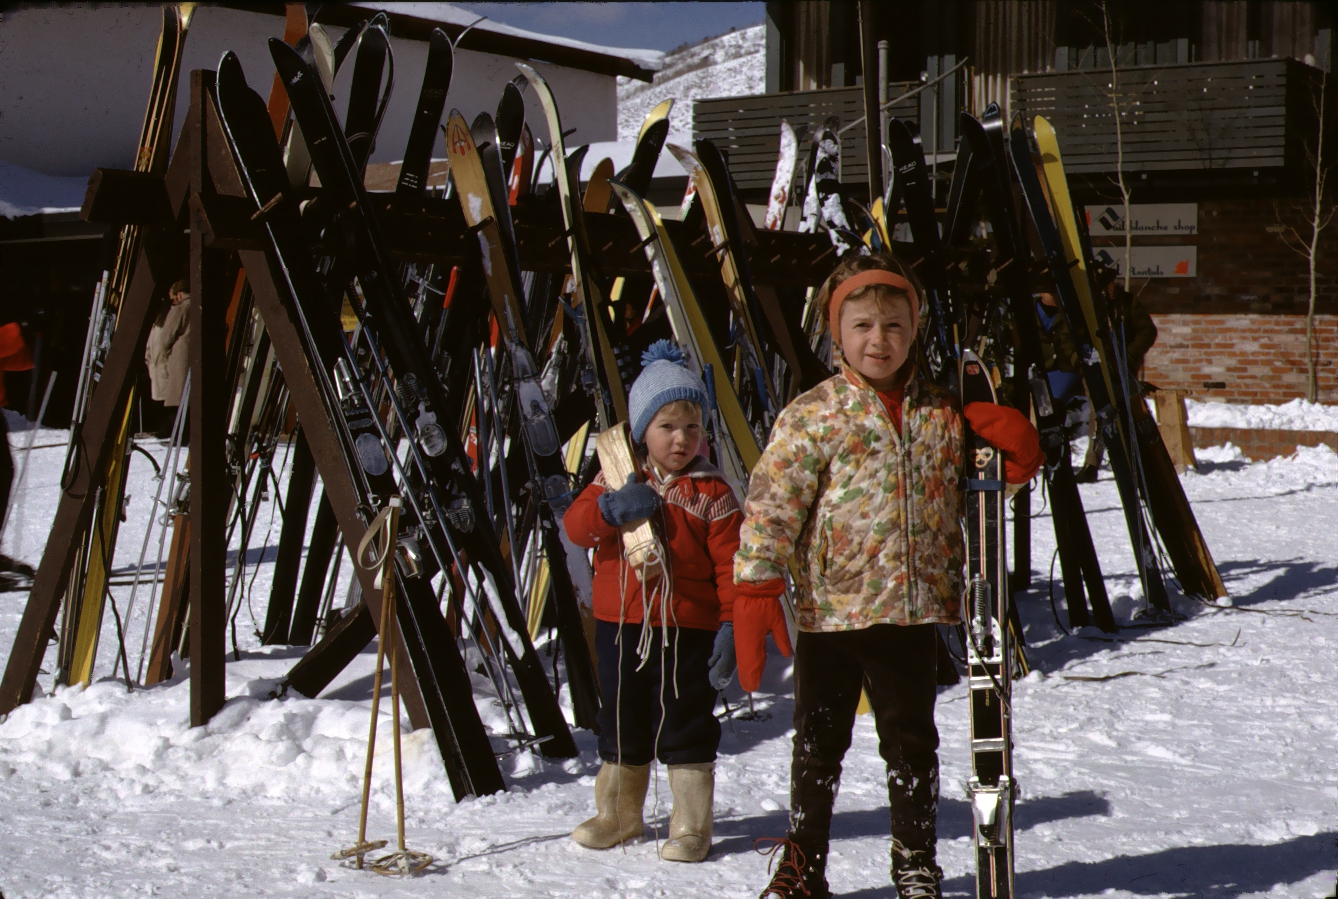 Vintage Color photo of two small girls preparing to ski at Vail Lodge, Colorado, shot by W. R. Allen